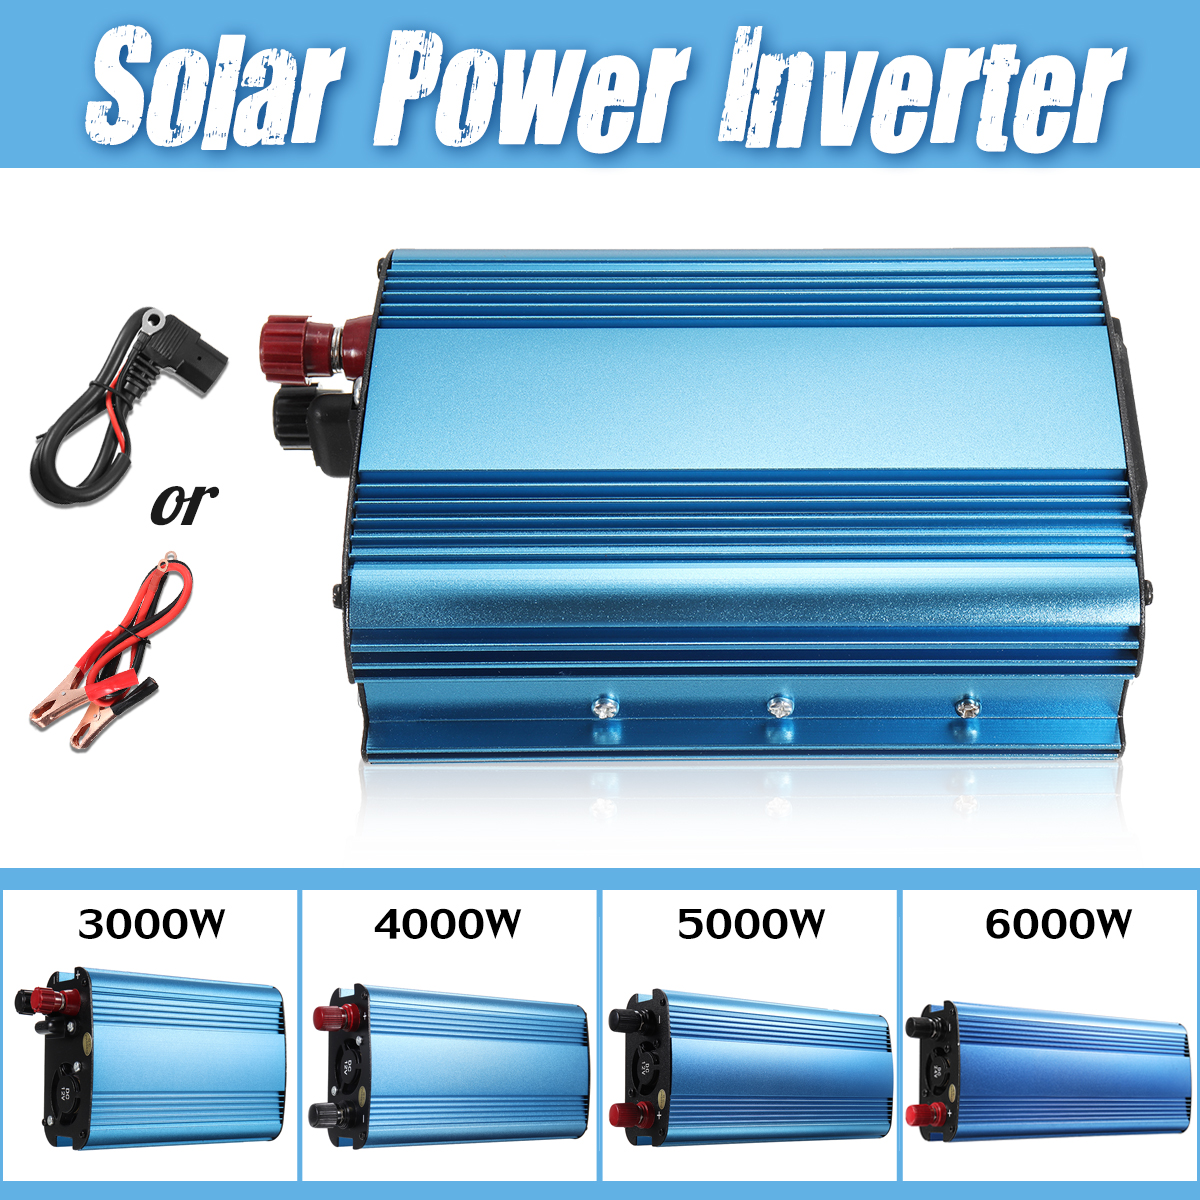 цена на 6000W/5000W/4000W/3000W Peak Power Inverter DC 12V/24V/48V/60V To AC 220V Sine Wave Solar Inverter Car Charger Voltage